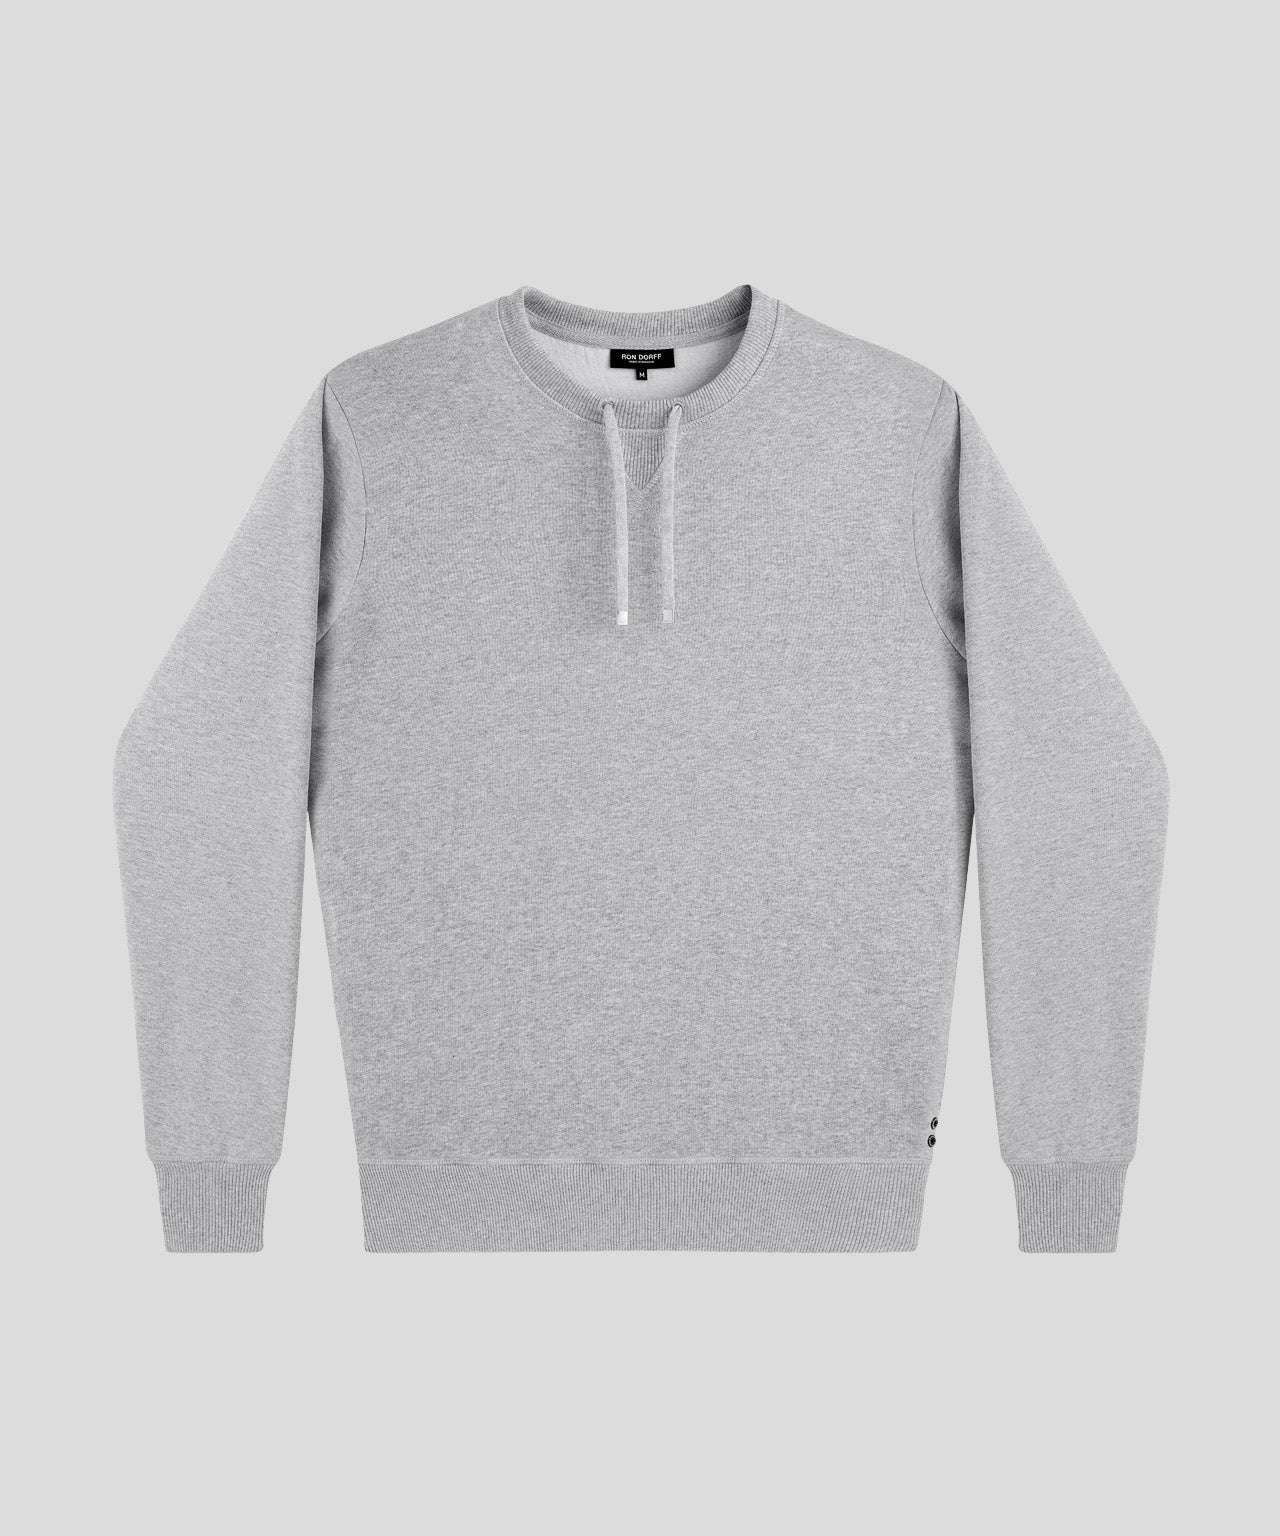 Sweatshirt Drawstring - grey melange